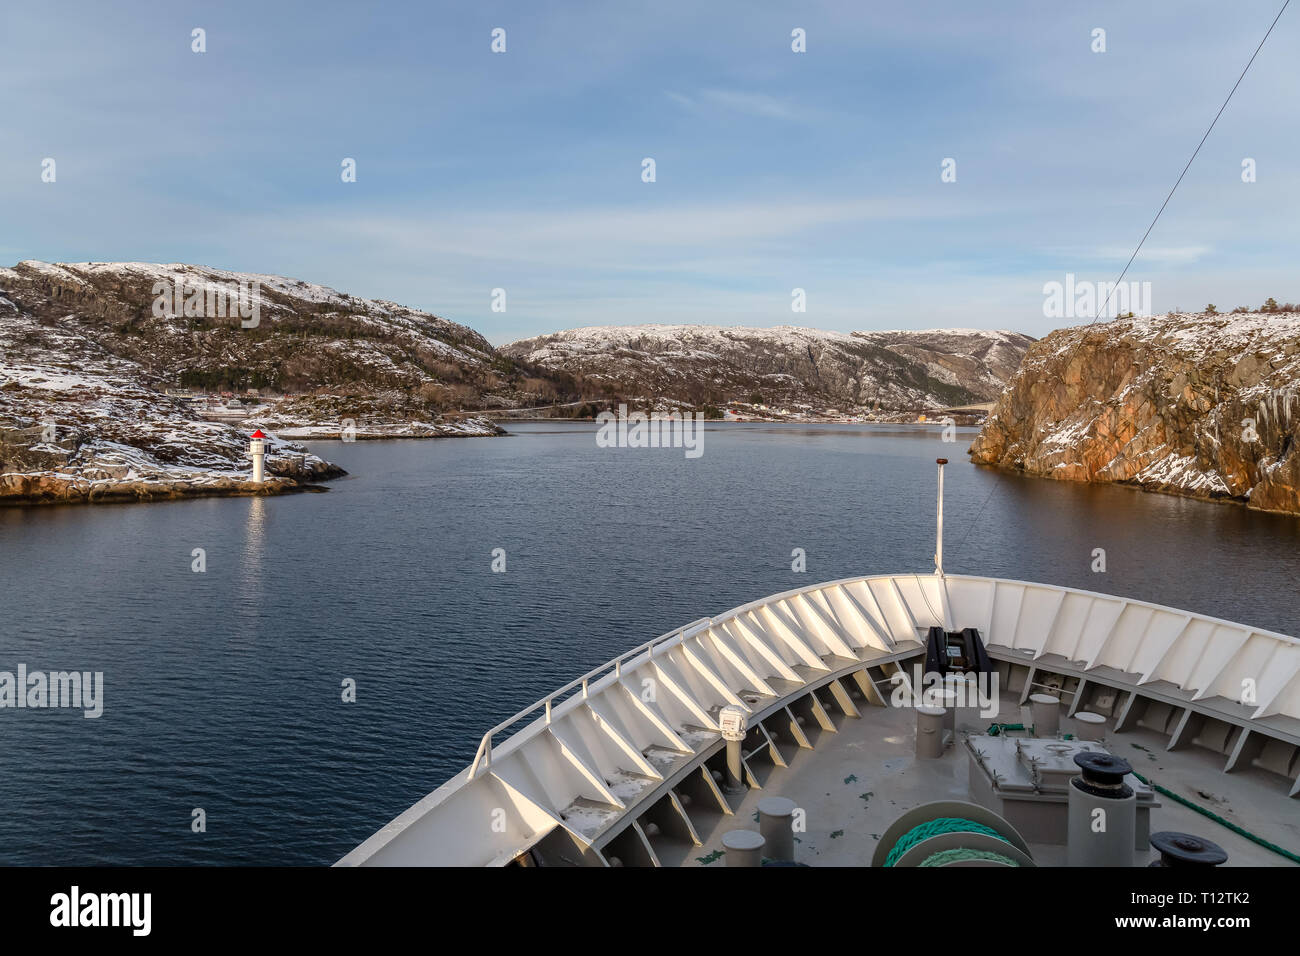 Cruising through the Norwegian Fjords during winter. View from the front of a cruise ship. - Stock Image